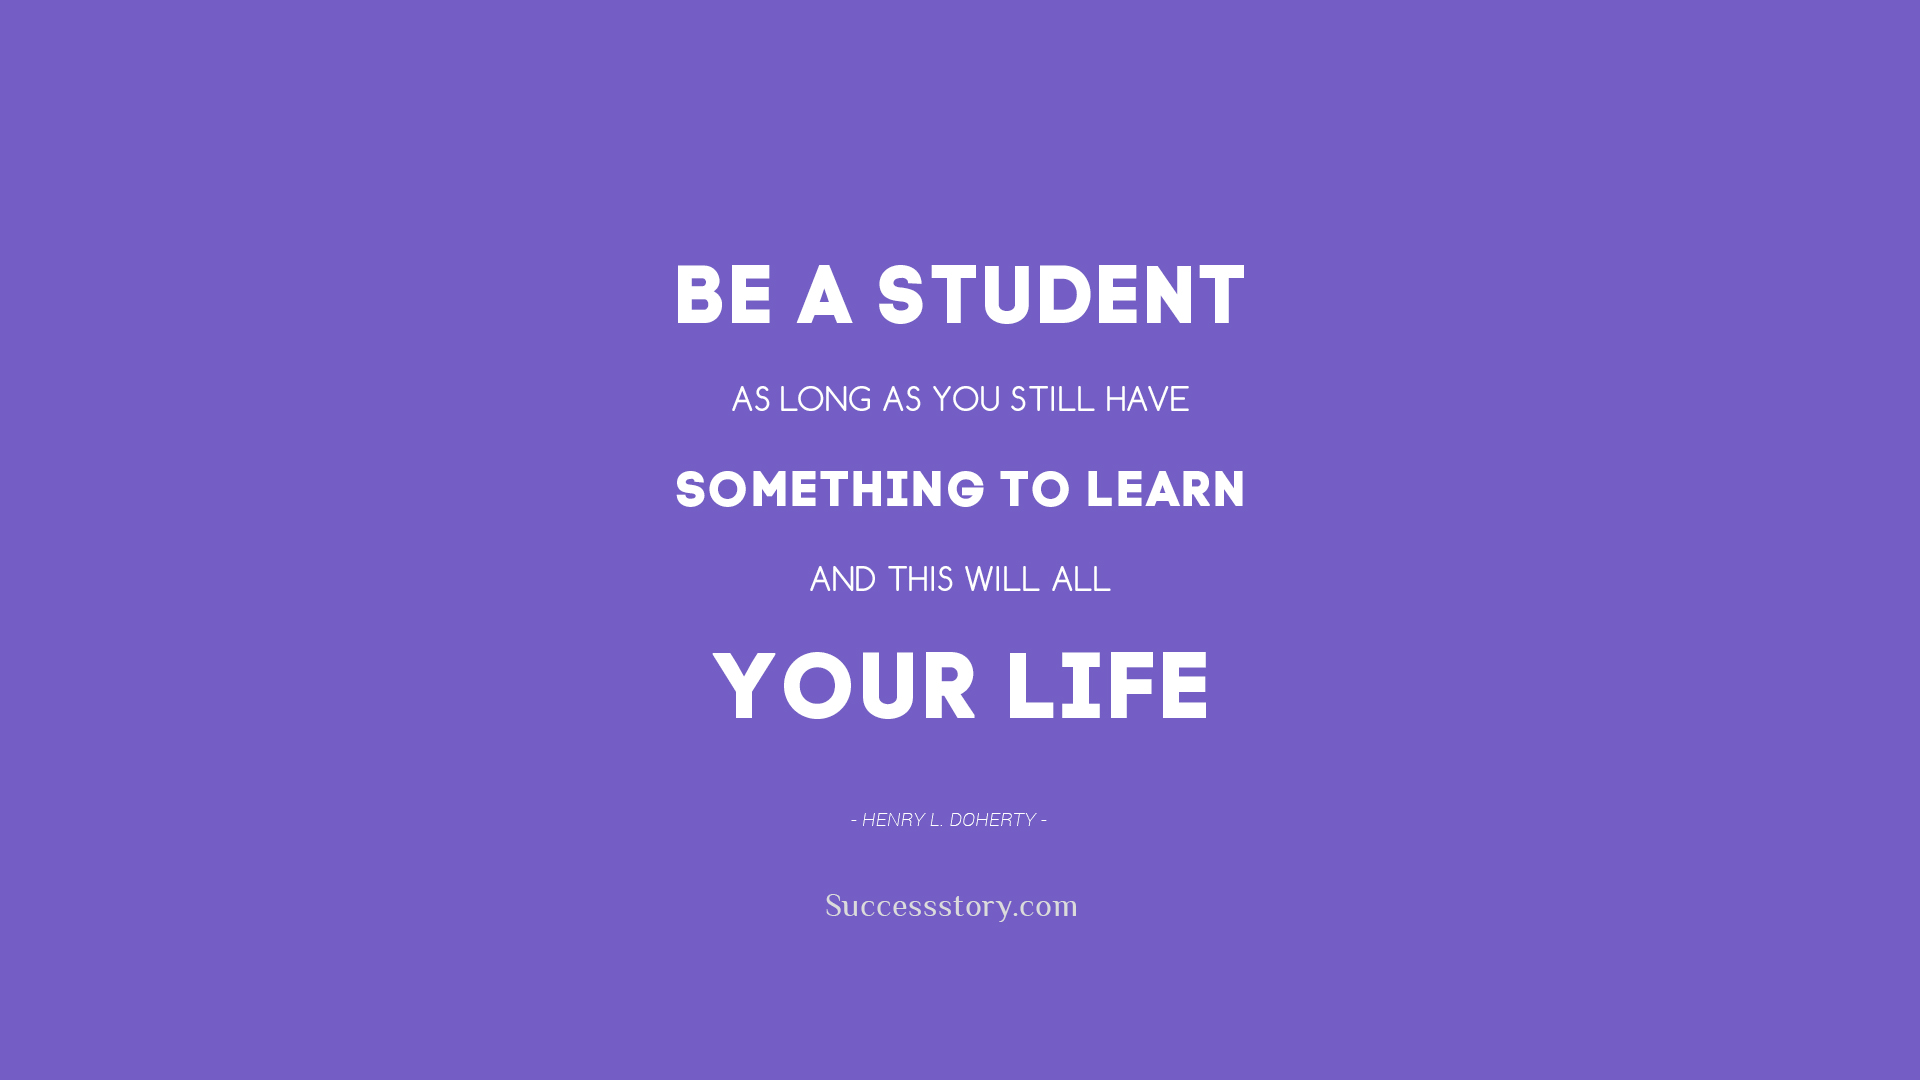 Inspiring Quotes About Student Life